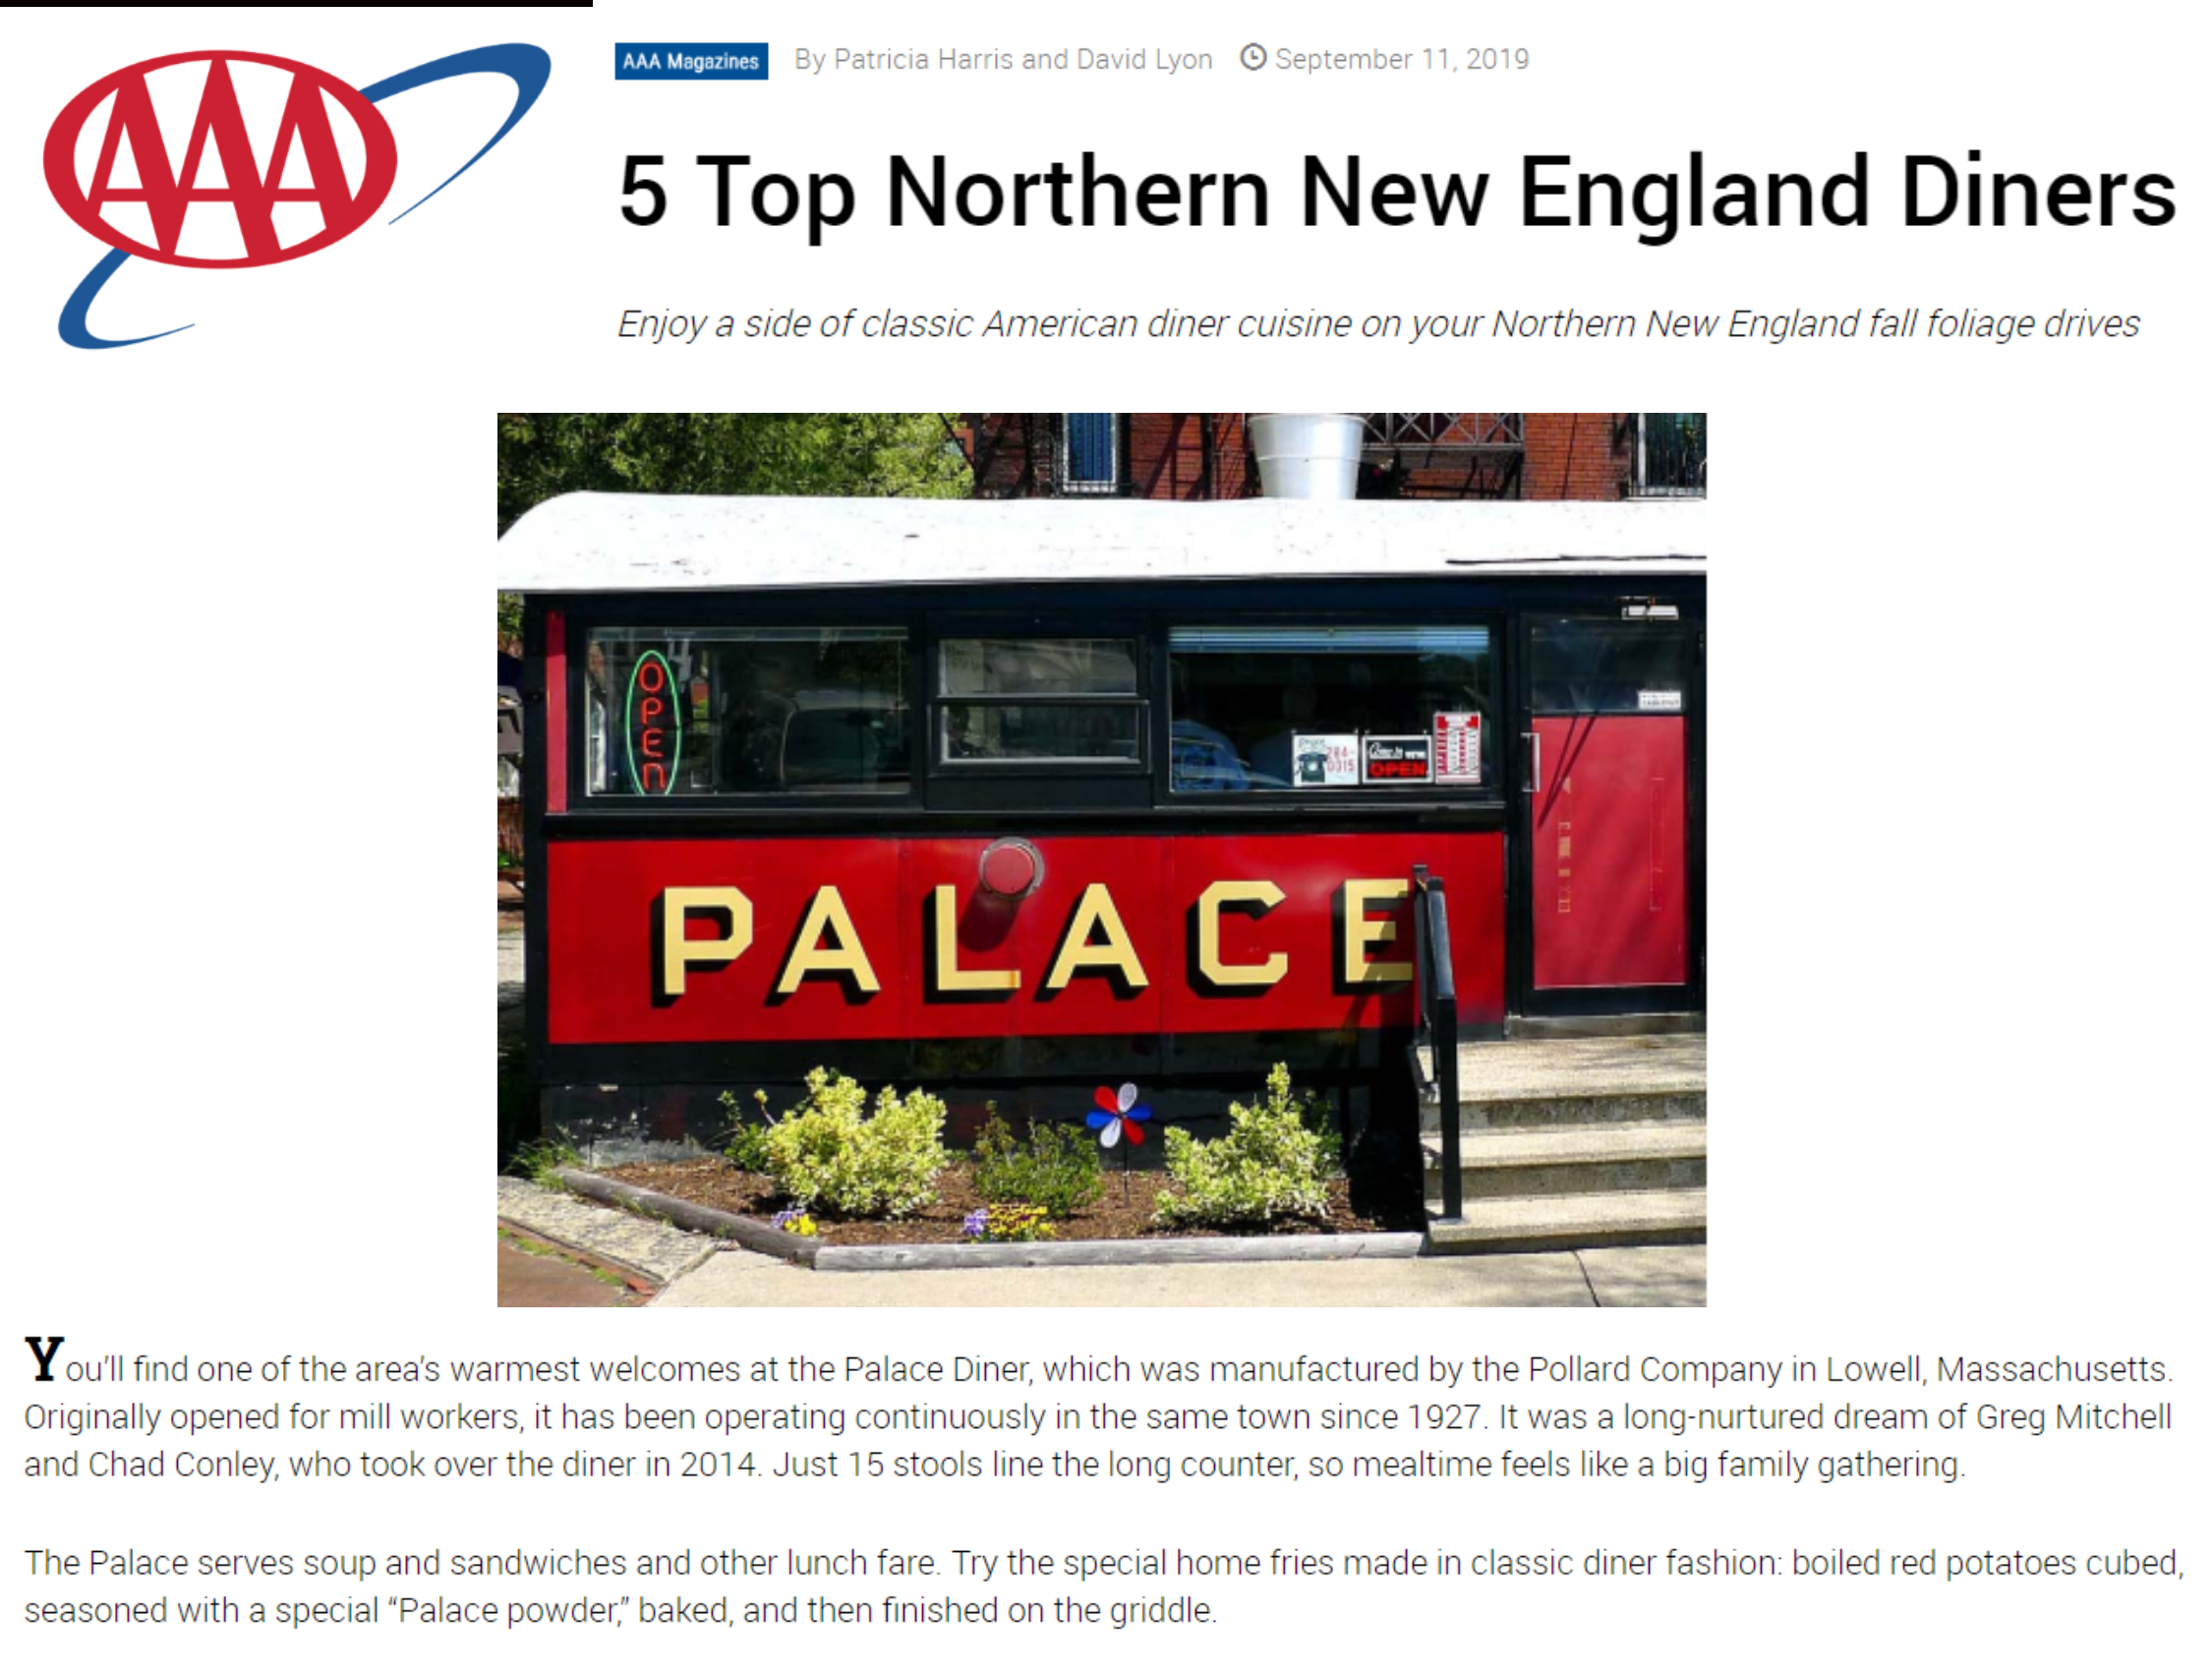 AAA Palace Diner Article